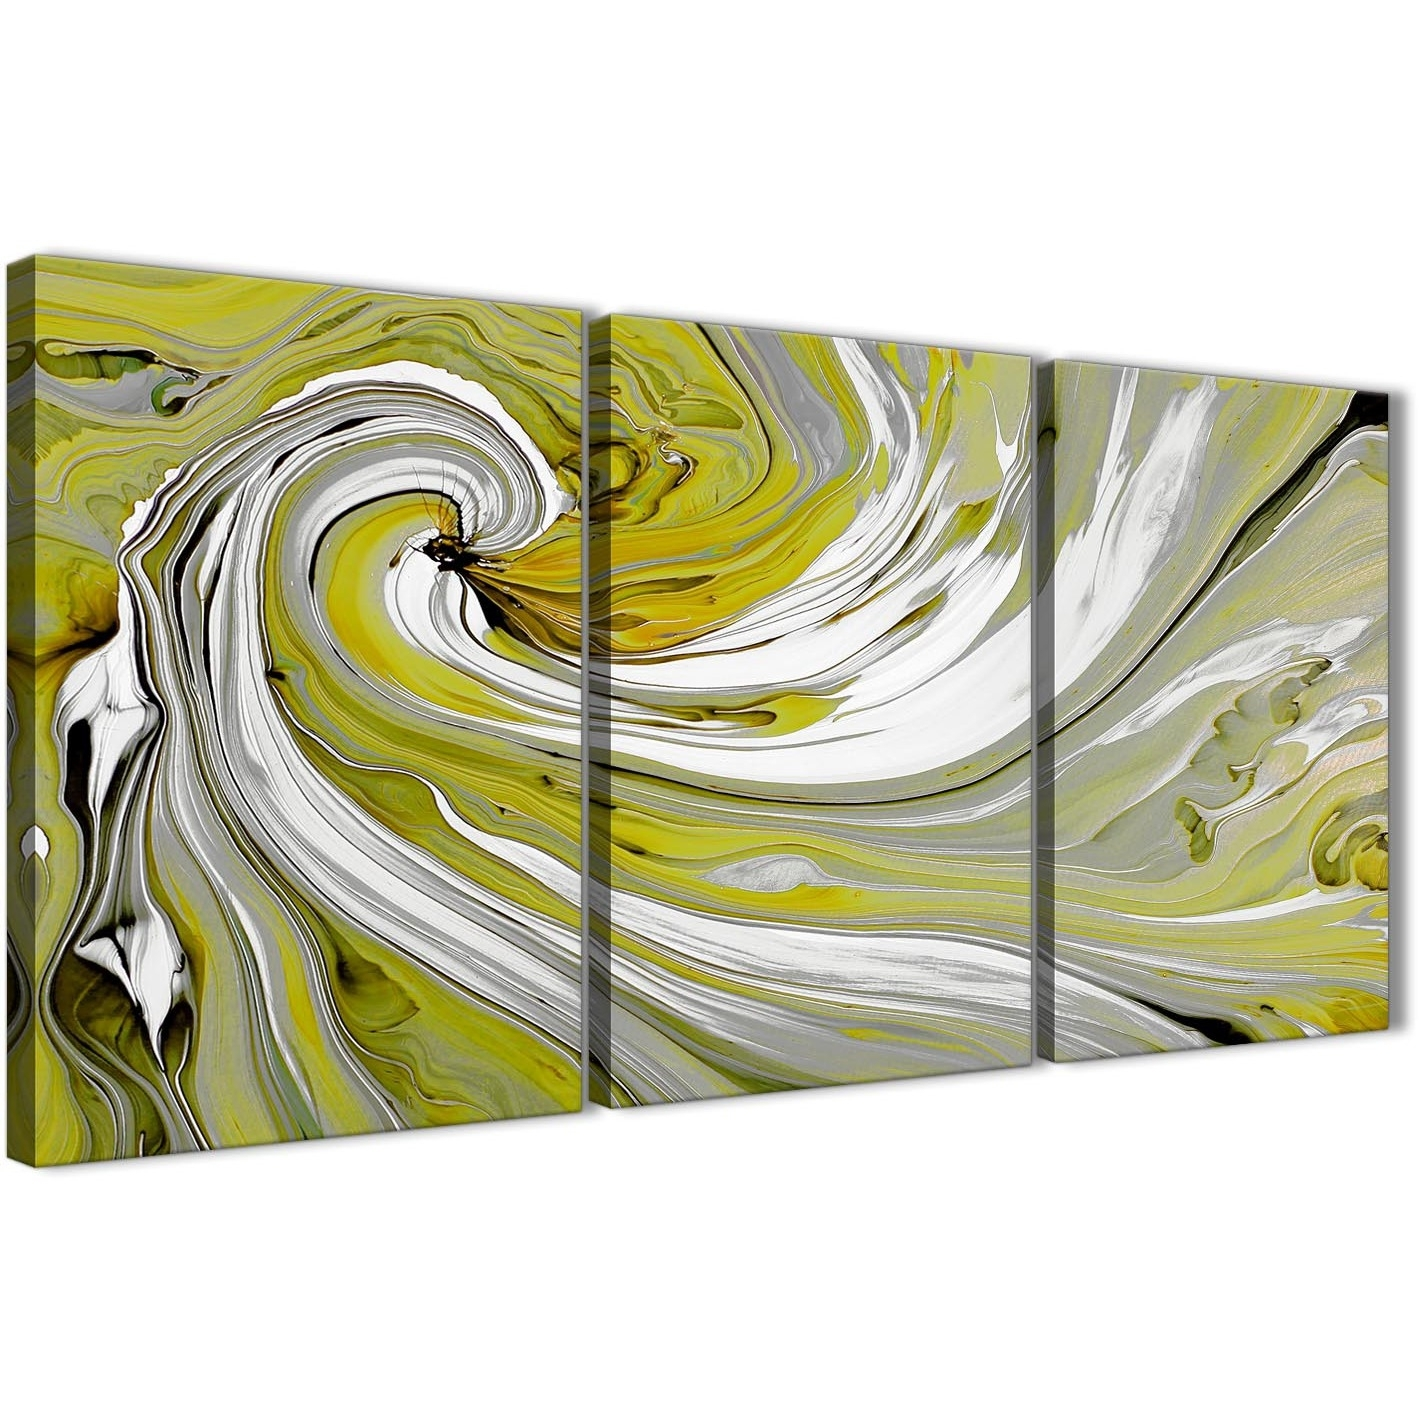 Lime Green Swirls Modern Abstract Canvas Wall Art – Split 3 Piece Within Most Up To Date Lime Green Abstract Wall Art (View 19 of 20)